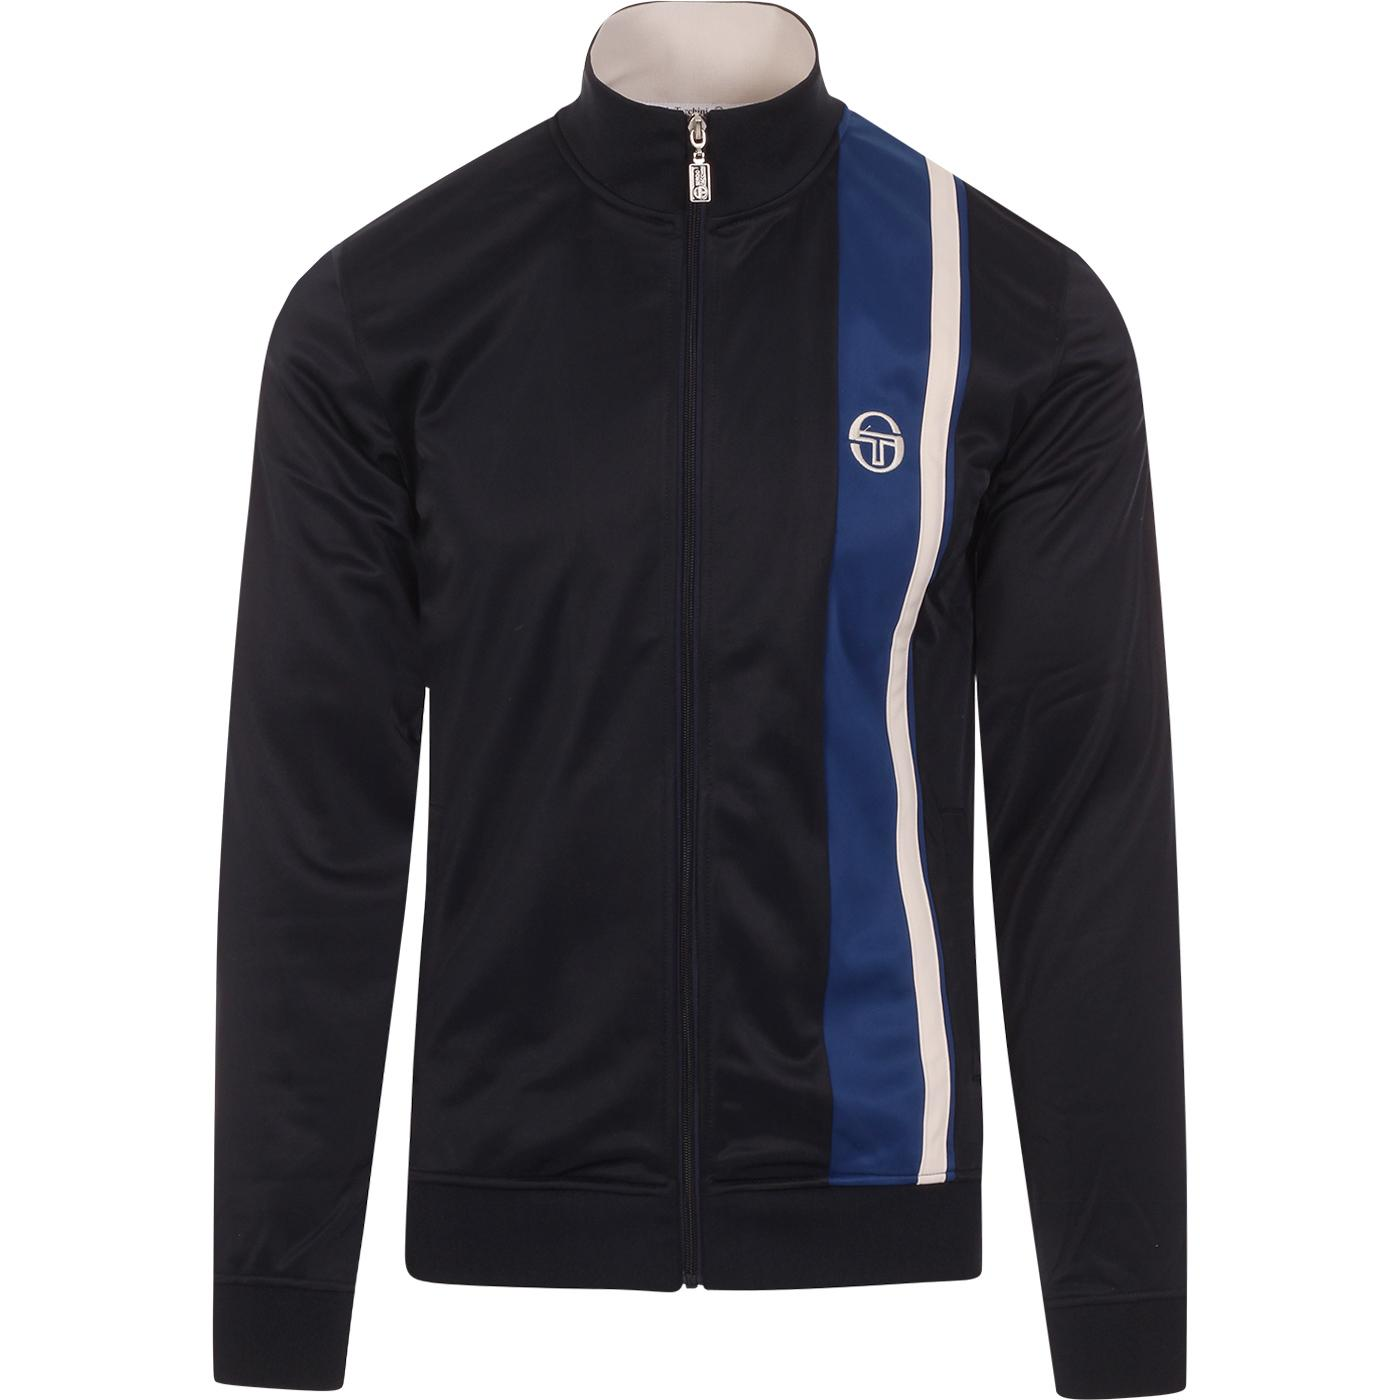 Jimmy SERGIO TACCHINI Racing Stripe Track Top (N)